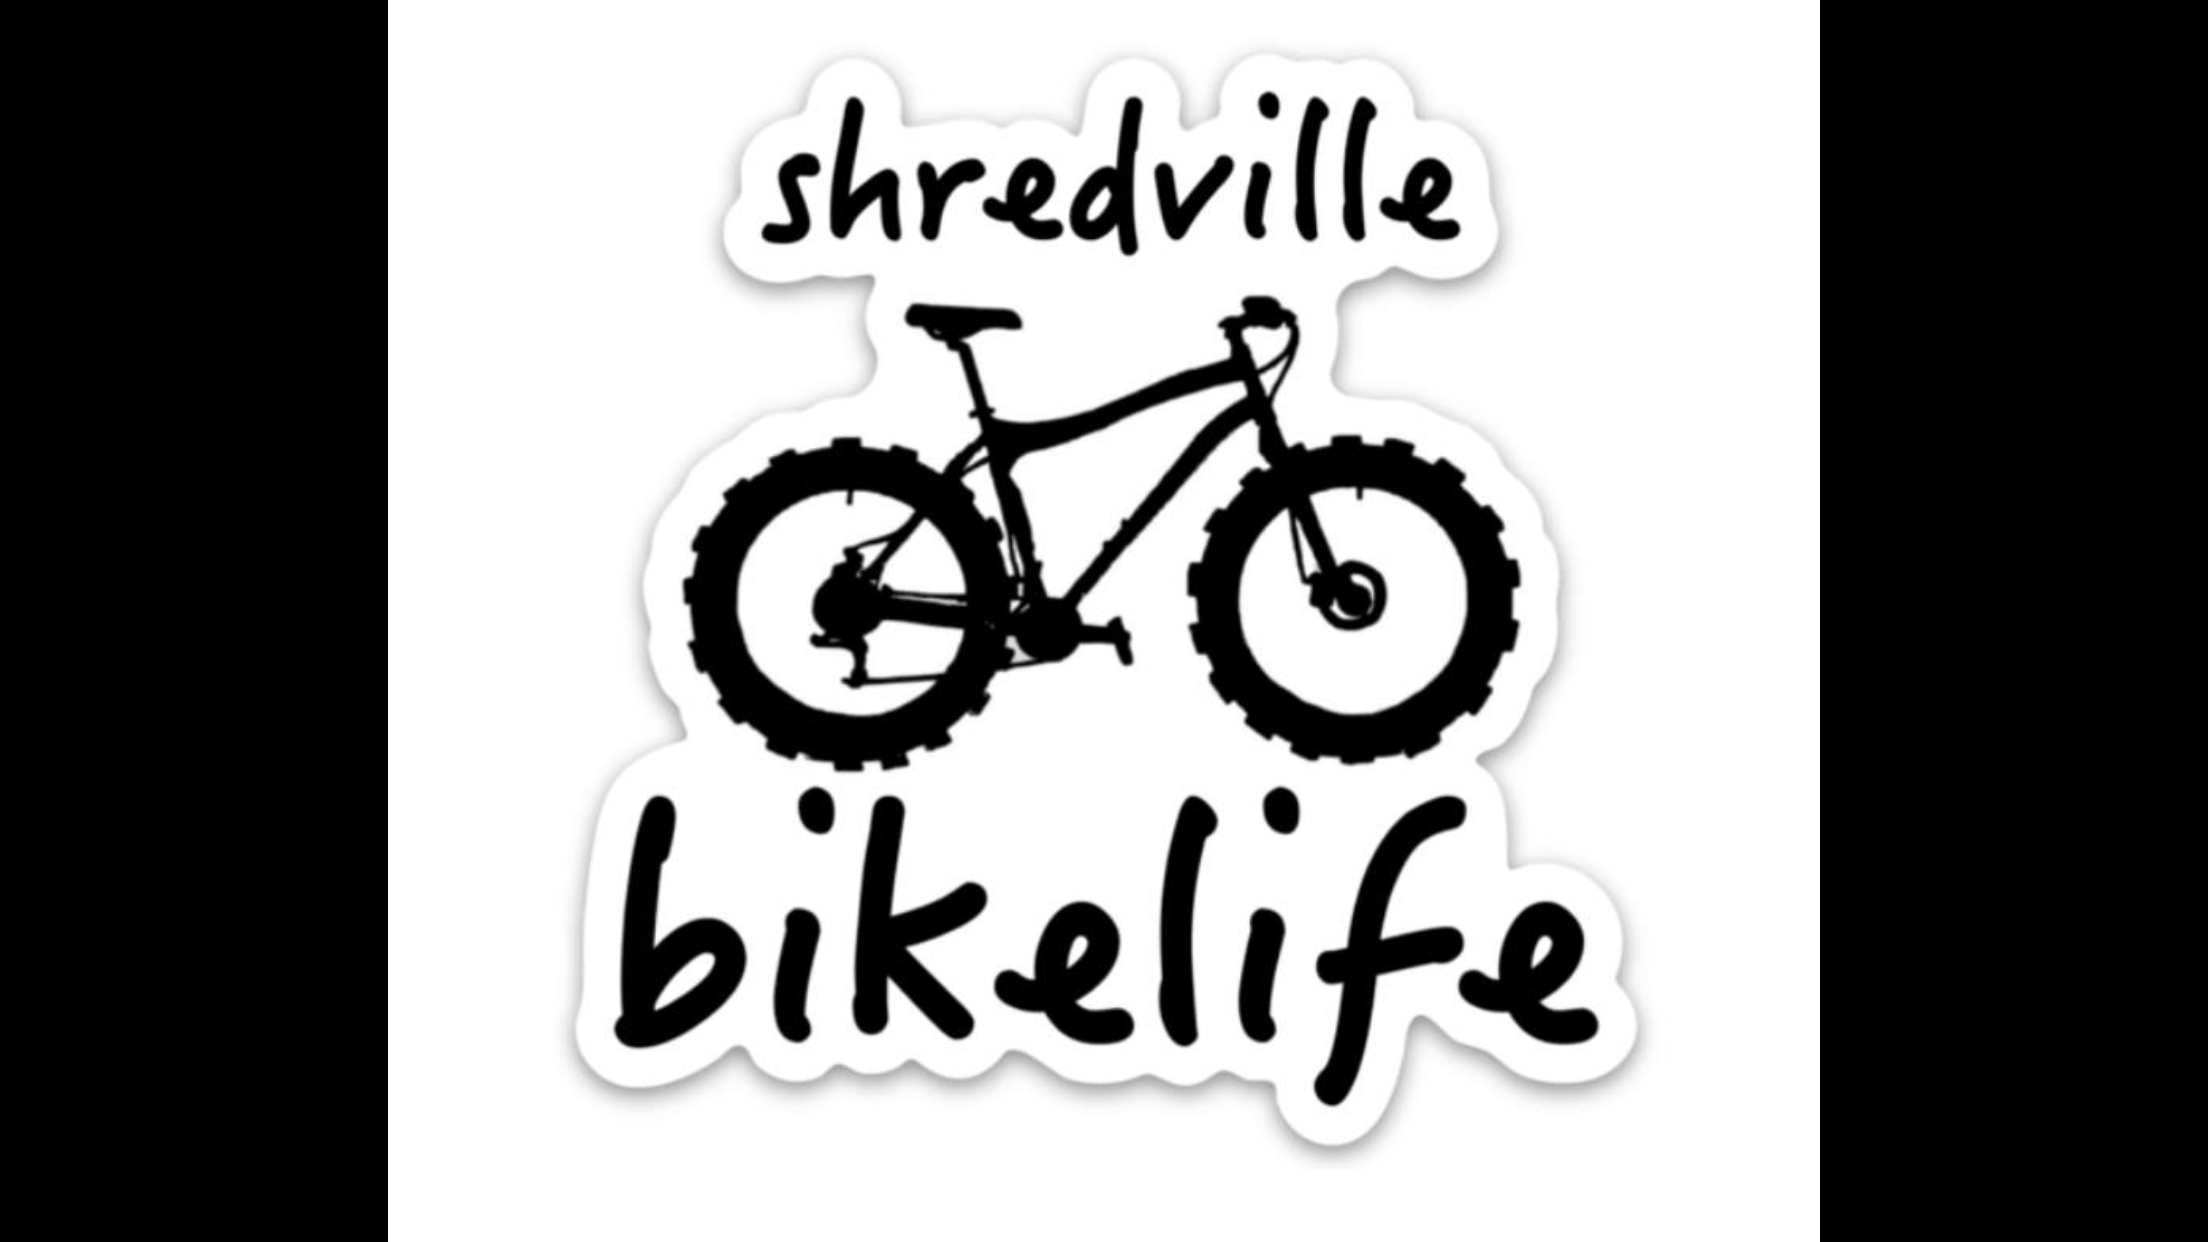 Shredville Sticker With Images Bike Stickers Bike Life New